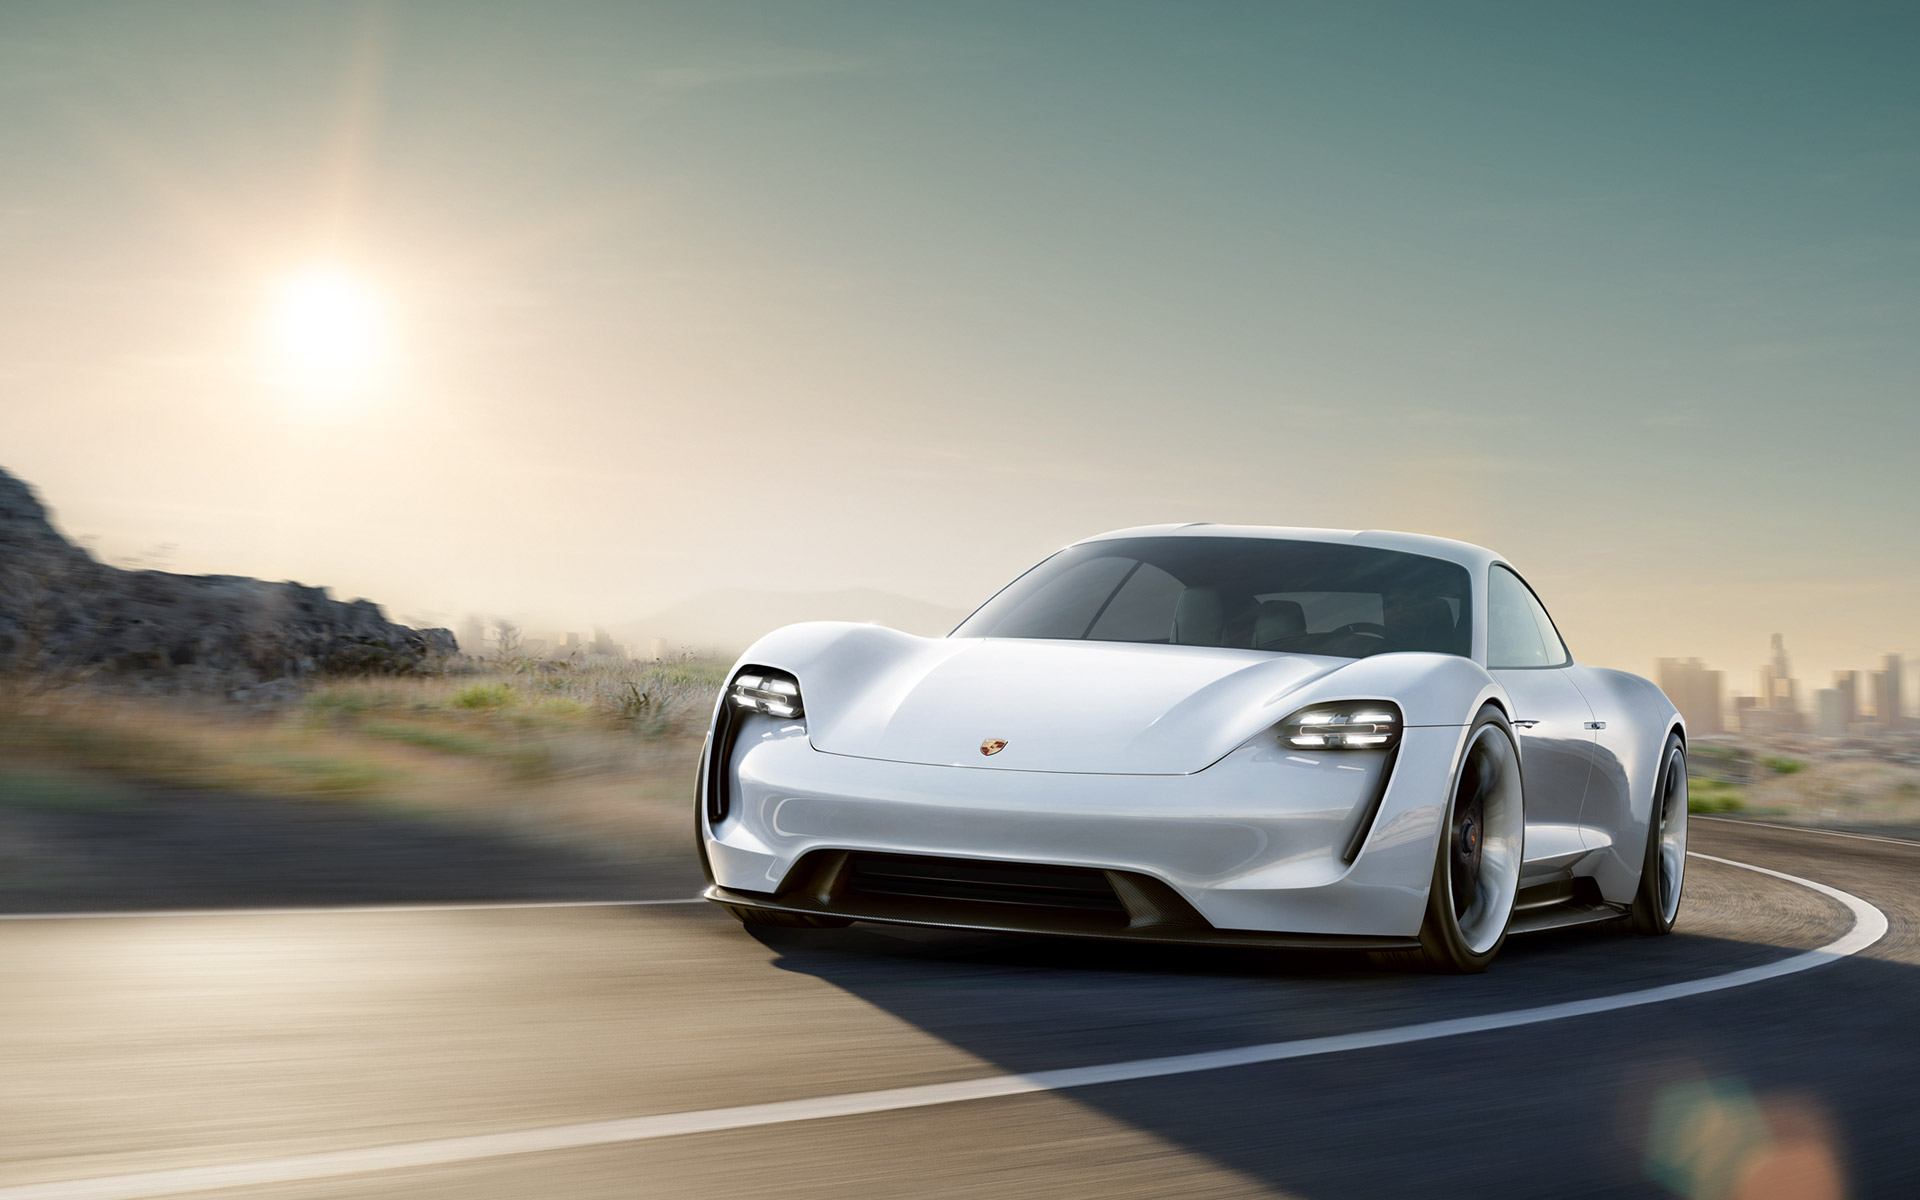 VIDEO: Designing A New Icon - The Porsche Mission E